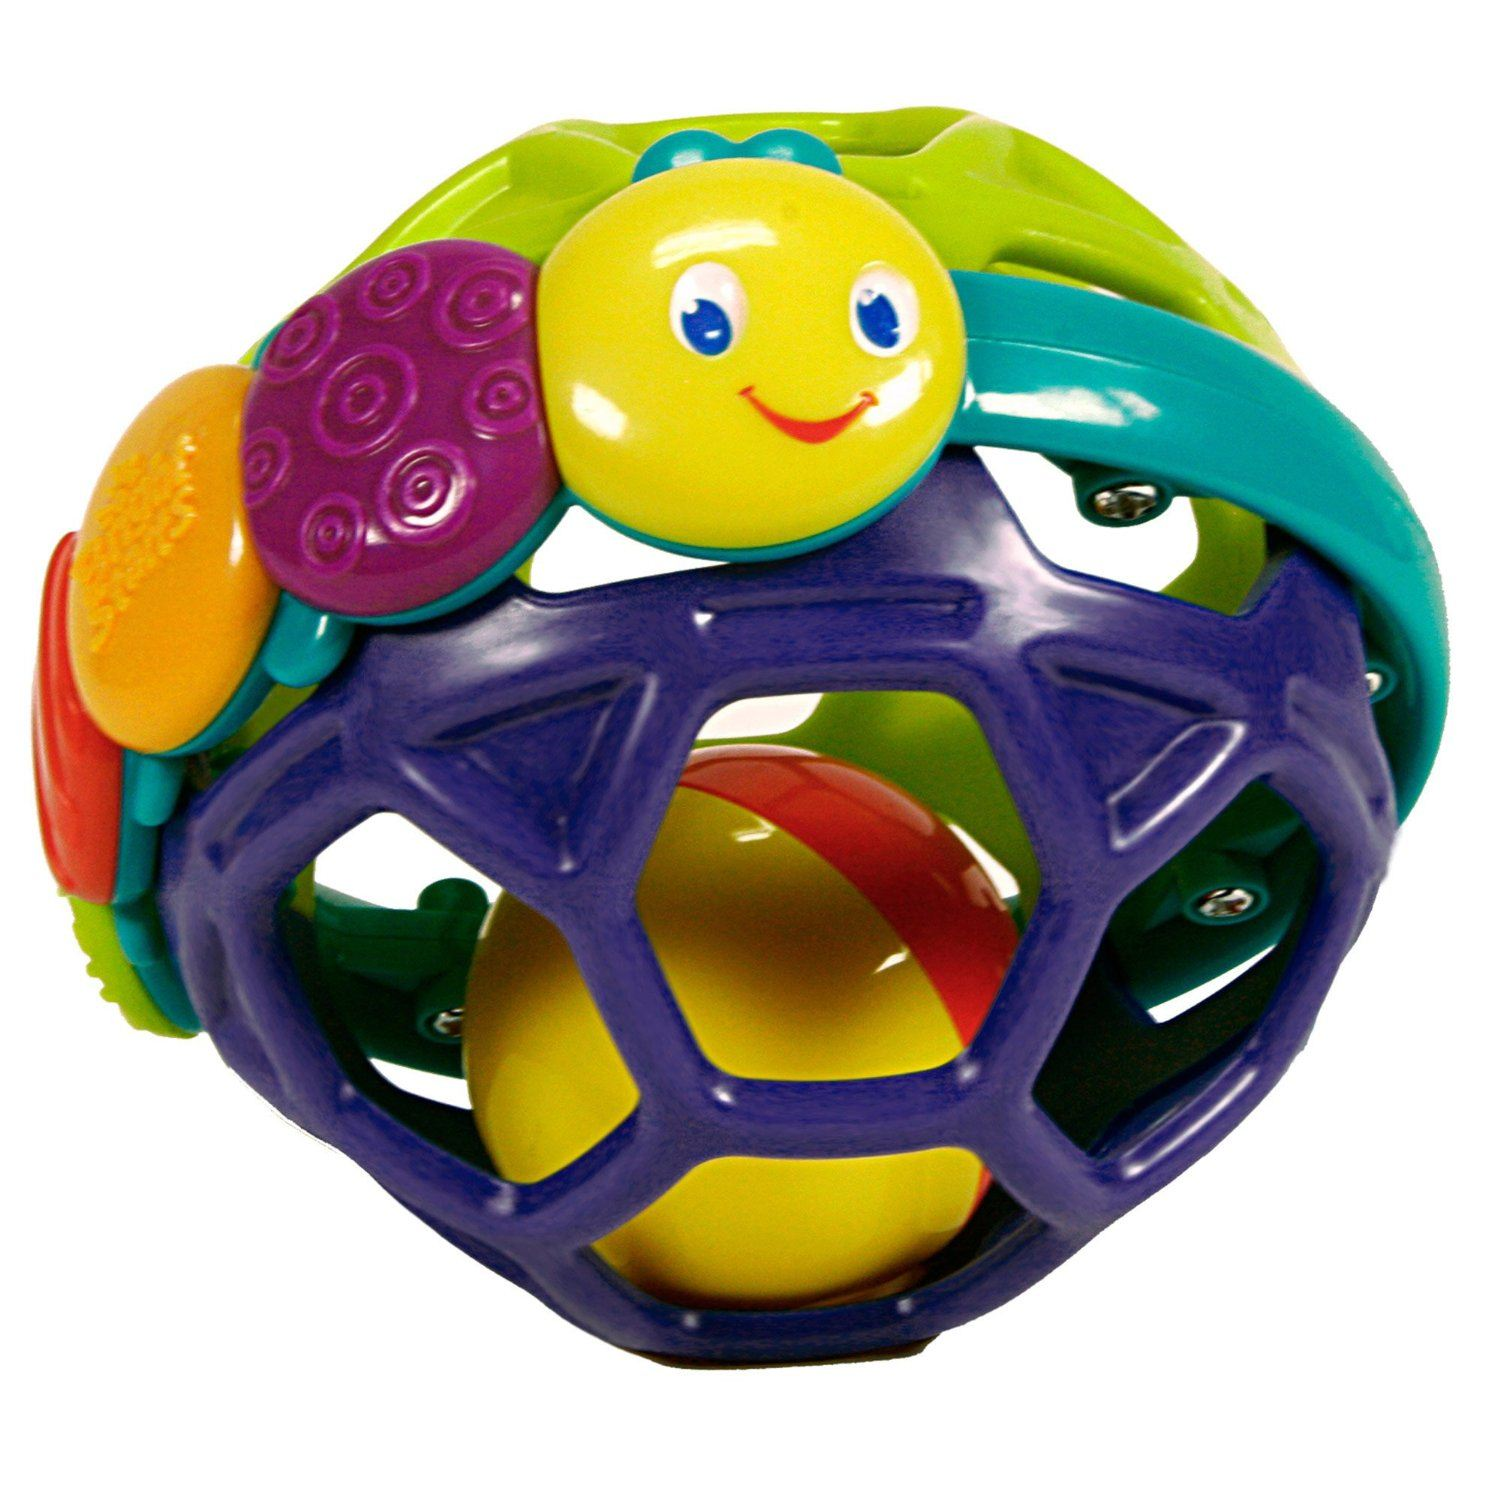 Stimulating Toys For Toddlers : Bright starts baby childrens flexi rattle textured soft